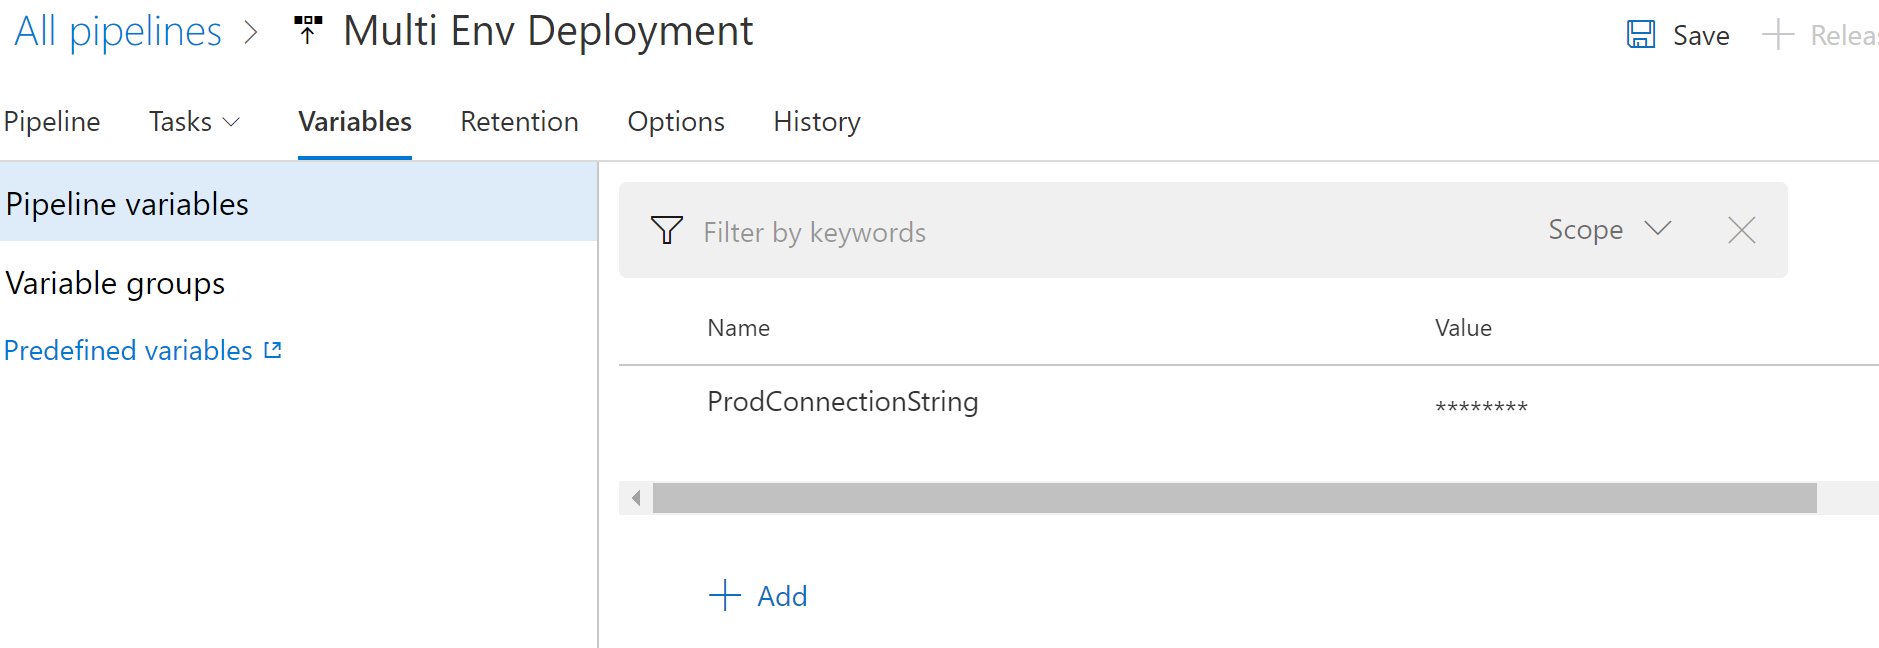 ProdConnectionString variable defined